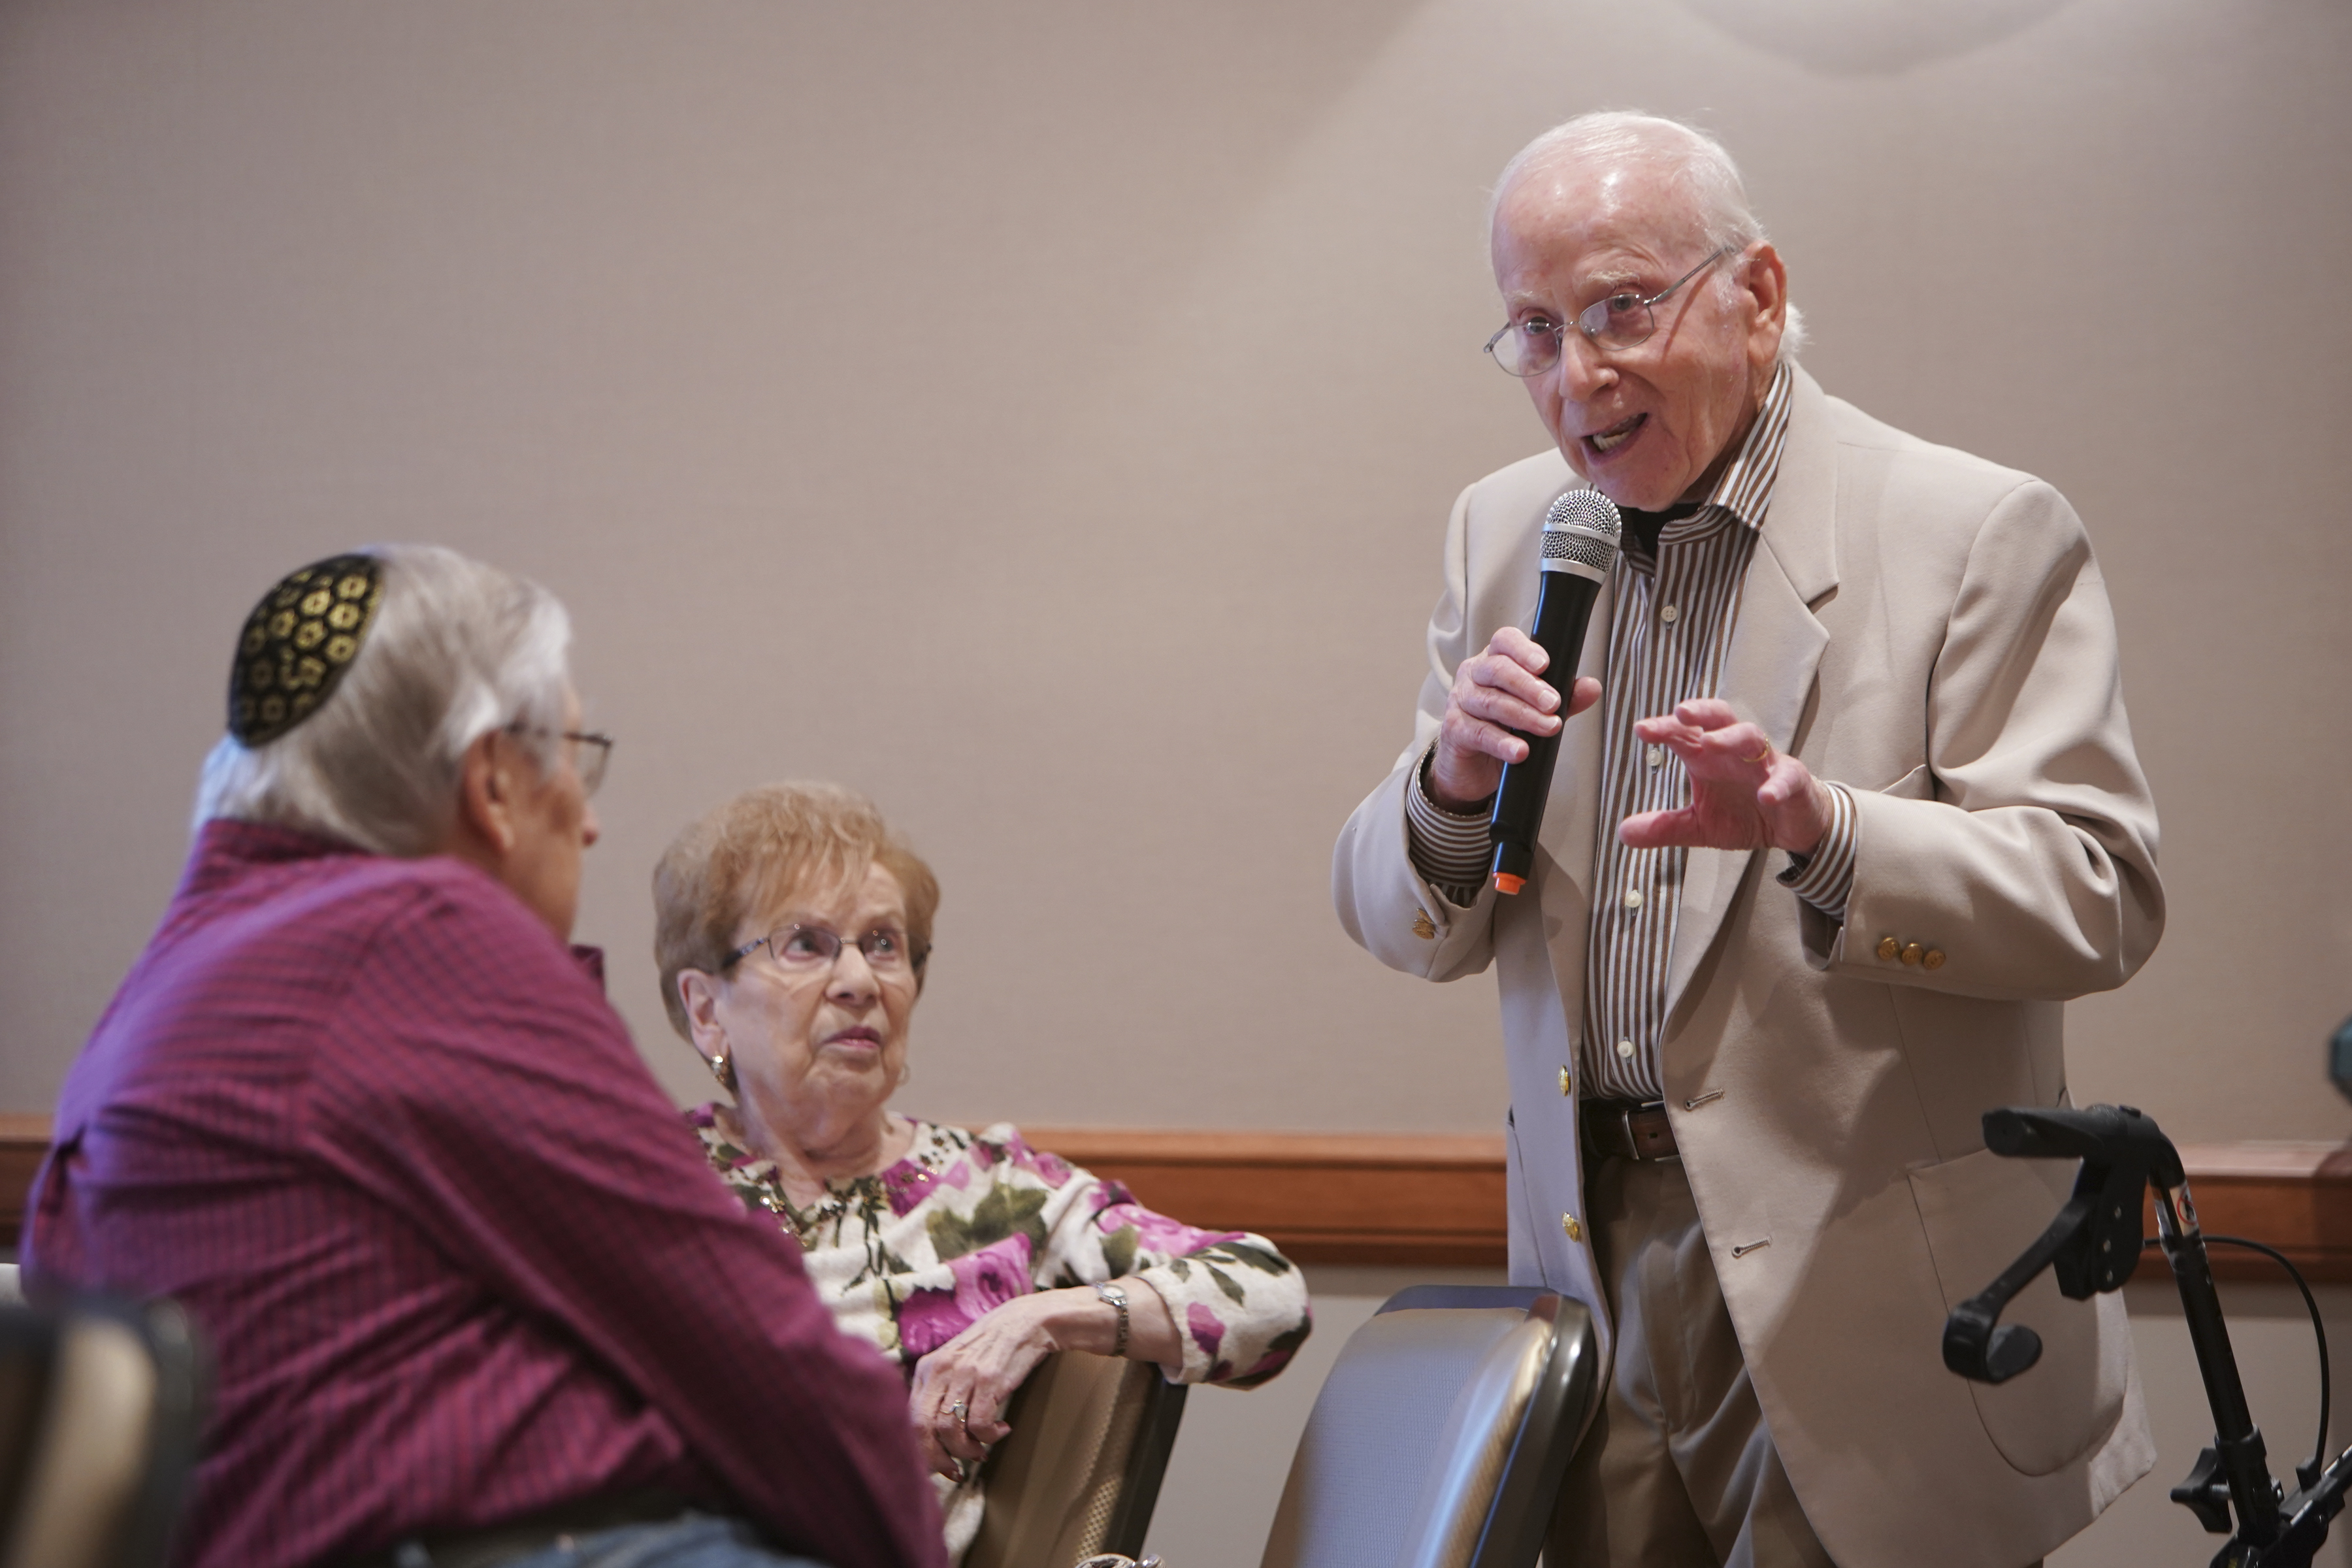 Octogenerian and former journalist Ed Eisen talks about his career, Sunday Oct. 29, 2017, to an audience at Congregation Beth El in Yardley Pa. (For the Inquirer/ Joseph Kaczmarek)